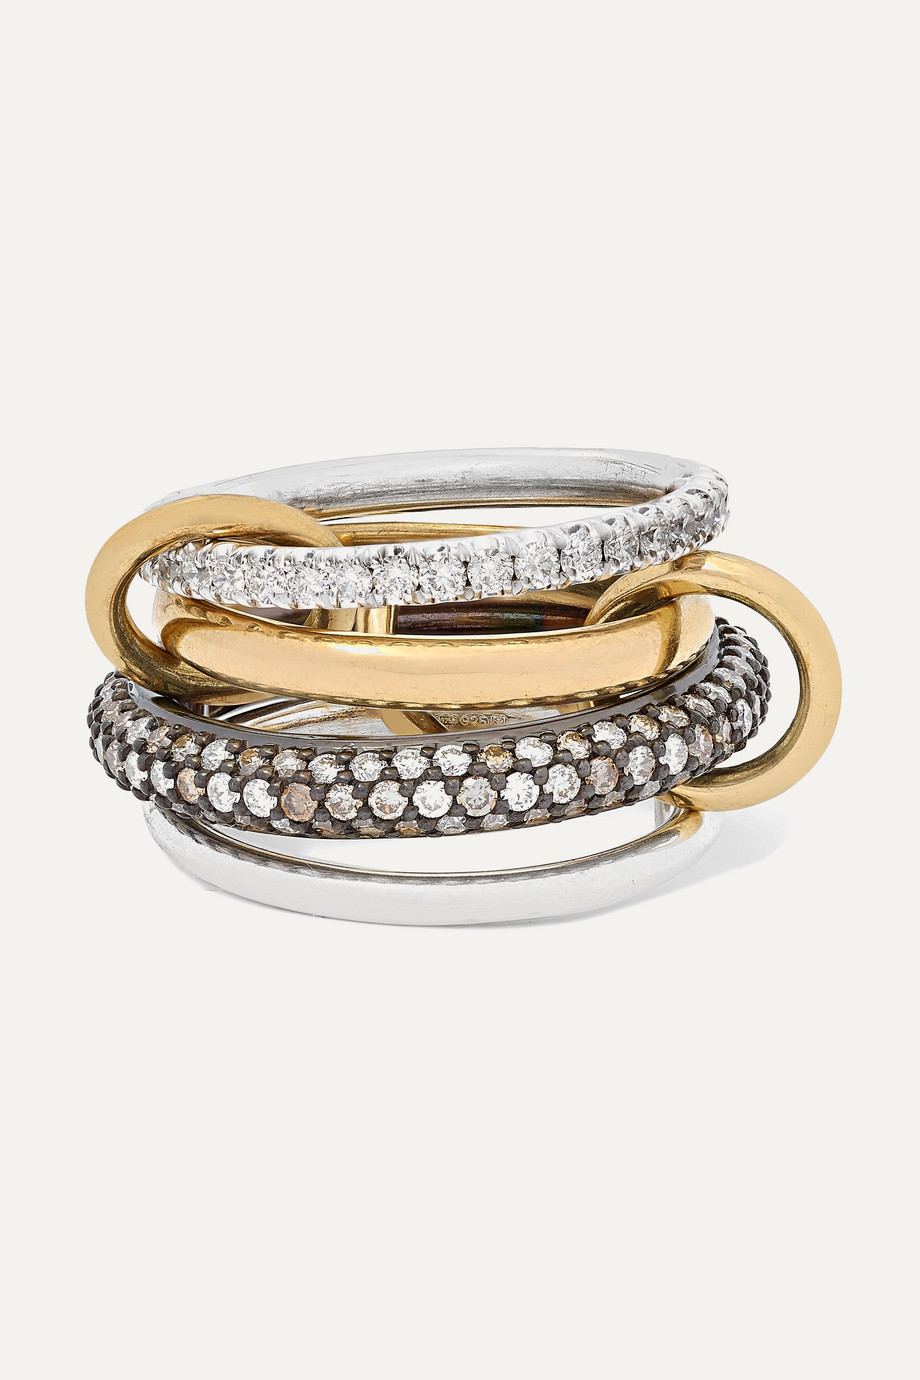 Spinelli Kilcollin Vega set of four 18-karat gold, sterling and rhodium-plated silver diamond rings